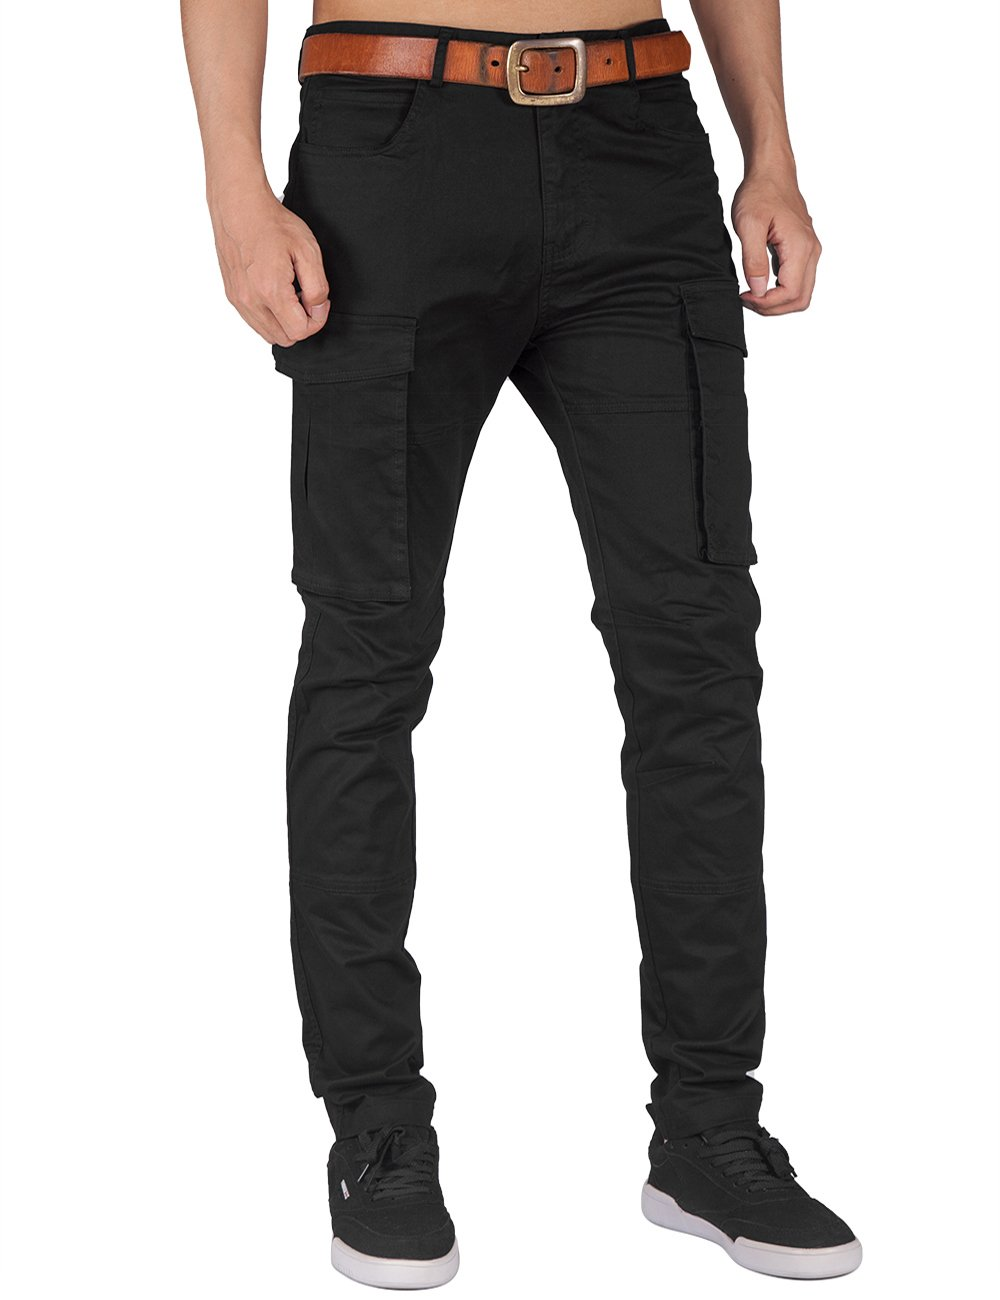 ITALY MORN Men Chino Cargo Jogger Pants Casual Twill Khakis Slim fit Black (S, Black) by ITALY MORN (Image #2)